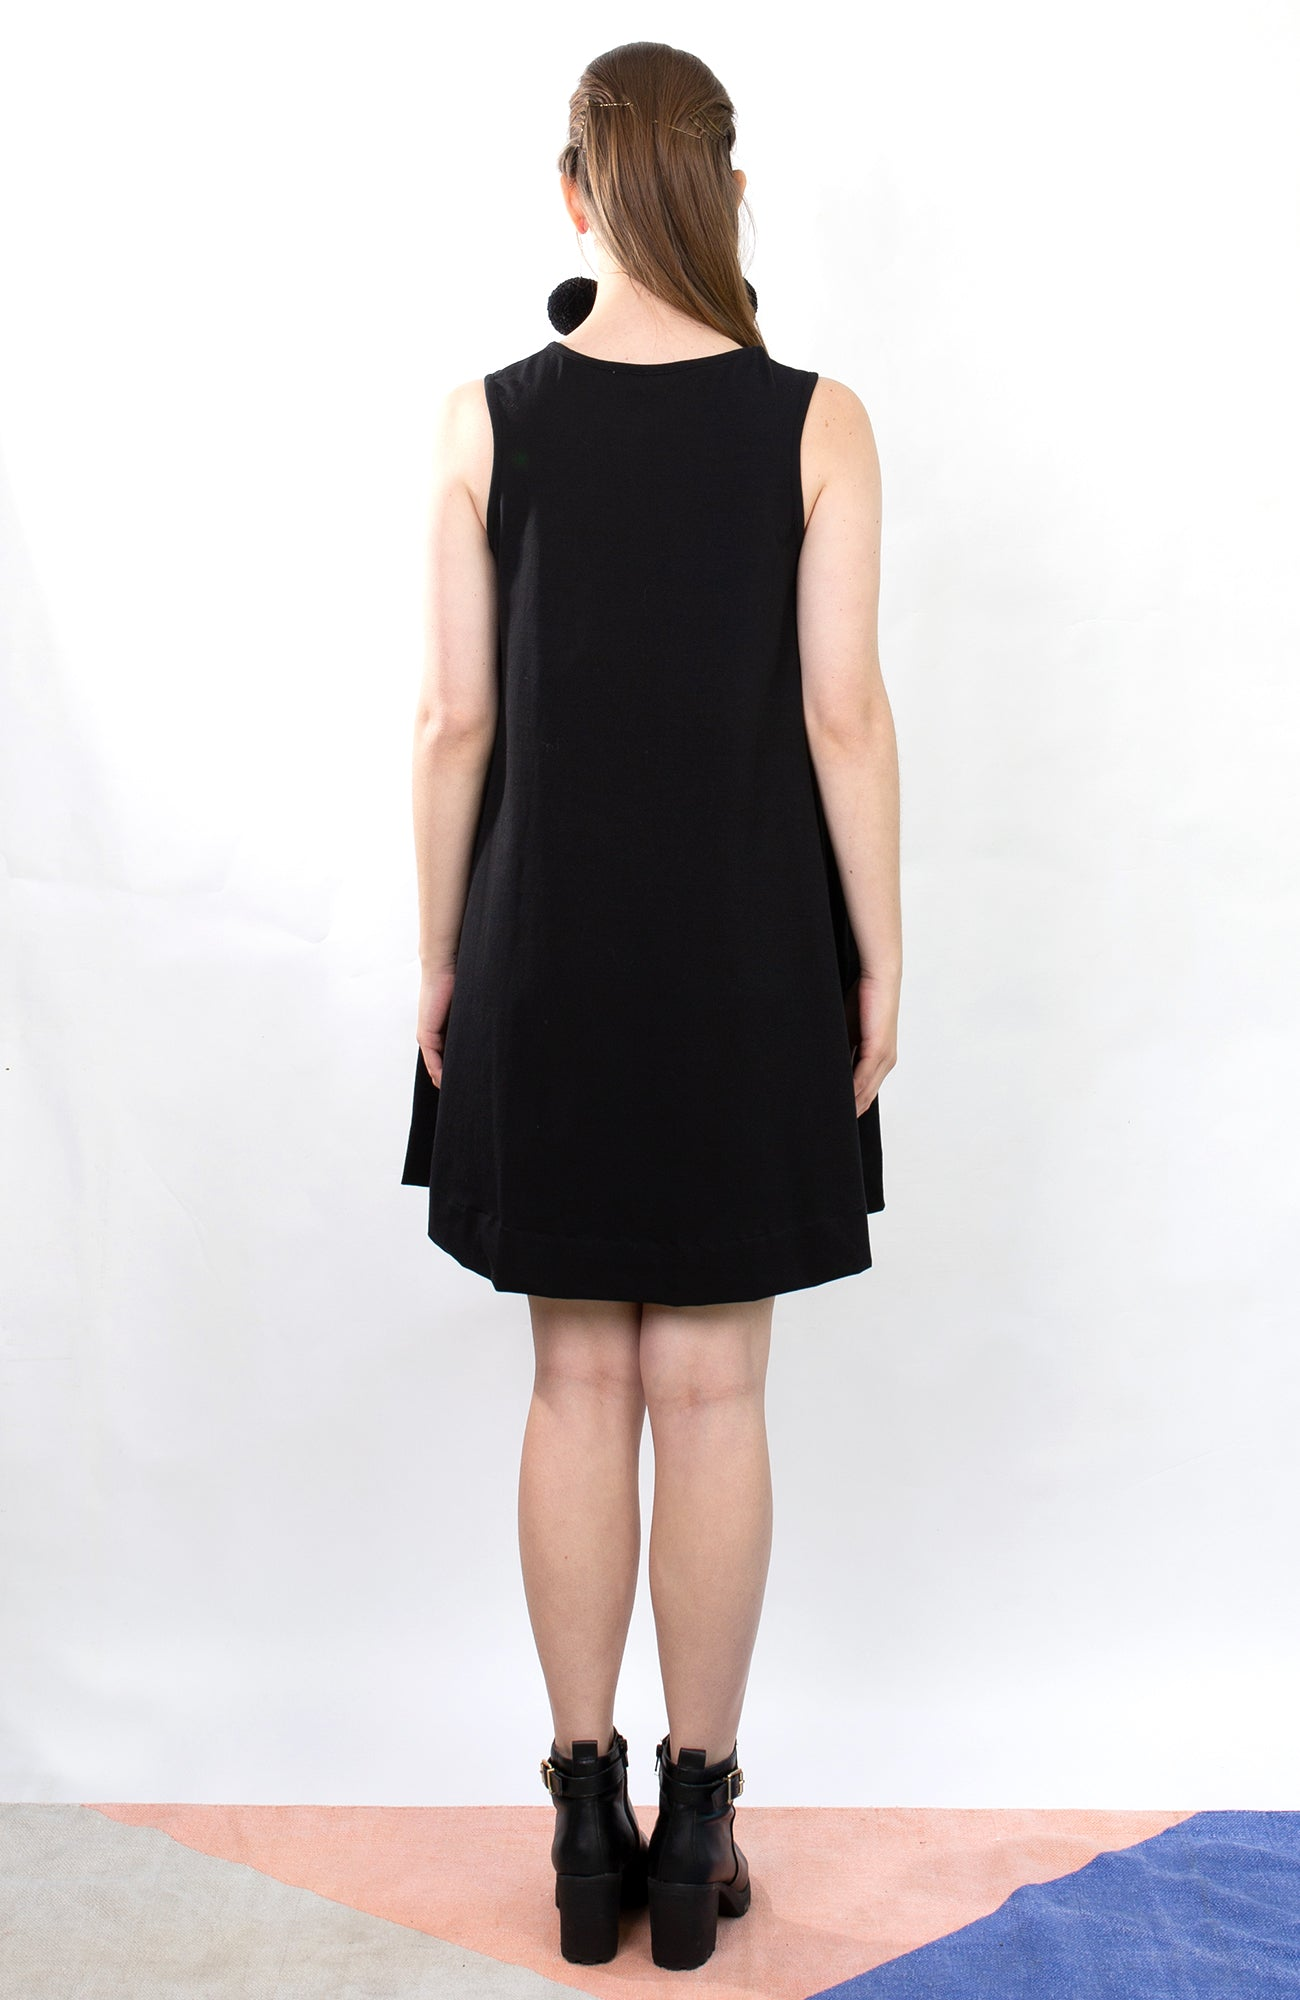 Feeling Free Dress in Black - inBLACK. The Label | Women's Black Dresses